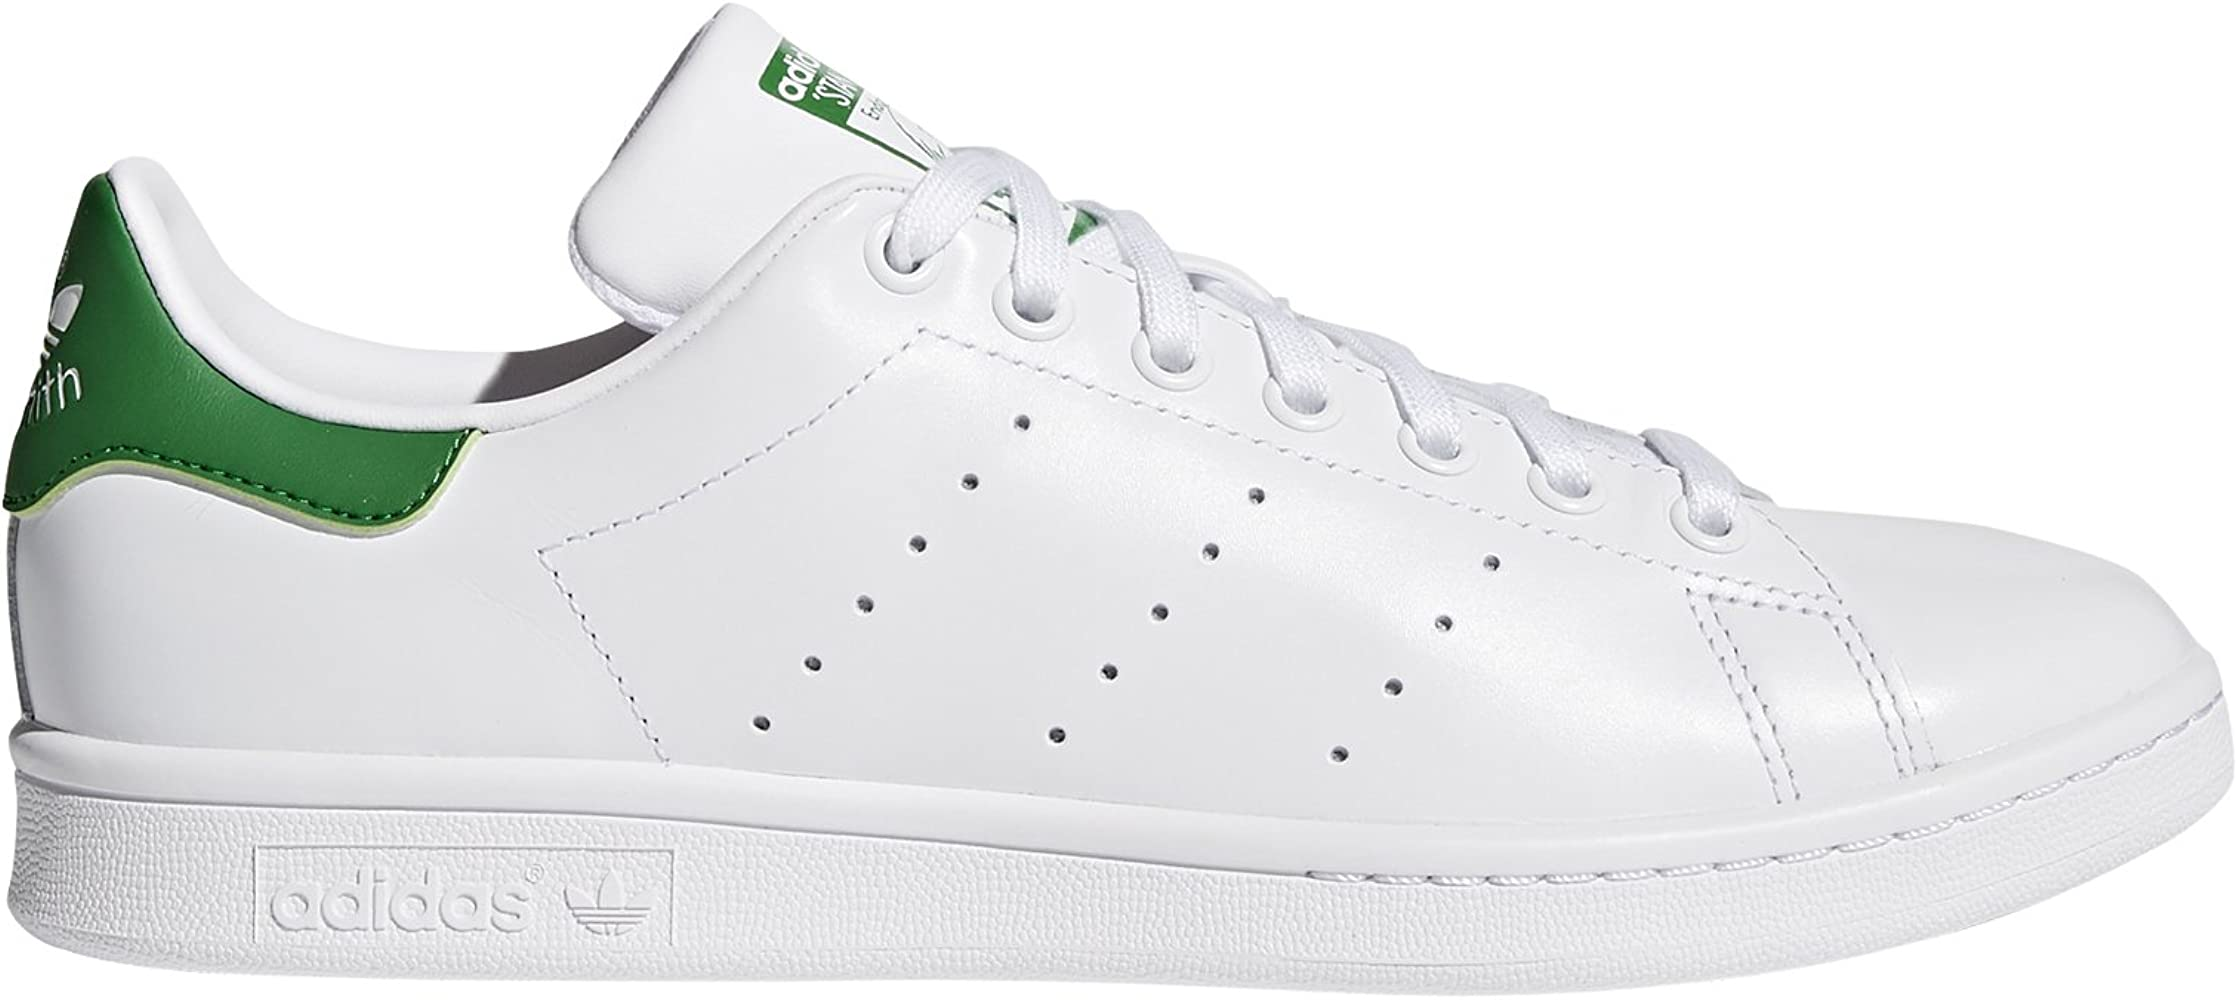 Originals Pour Whitewhitefairway49 M Baskets AdultesunisexeStan Eu Basses Smith Blanc 13 5ARj4L